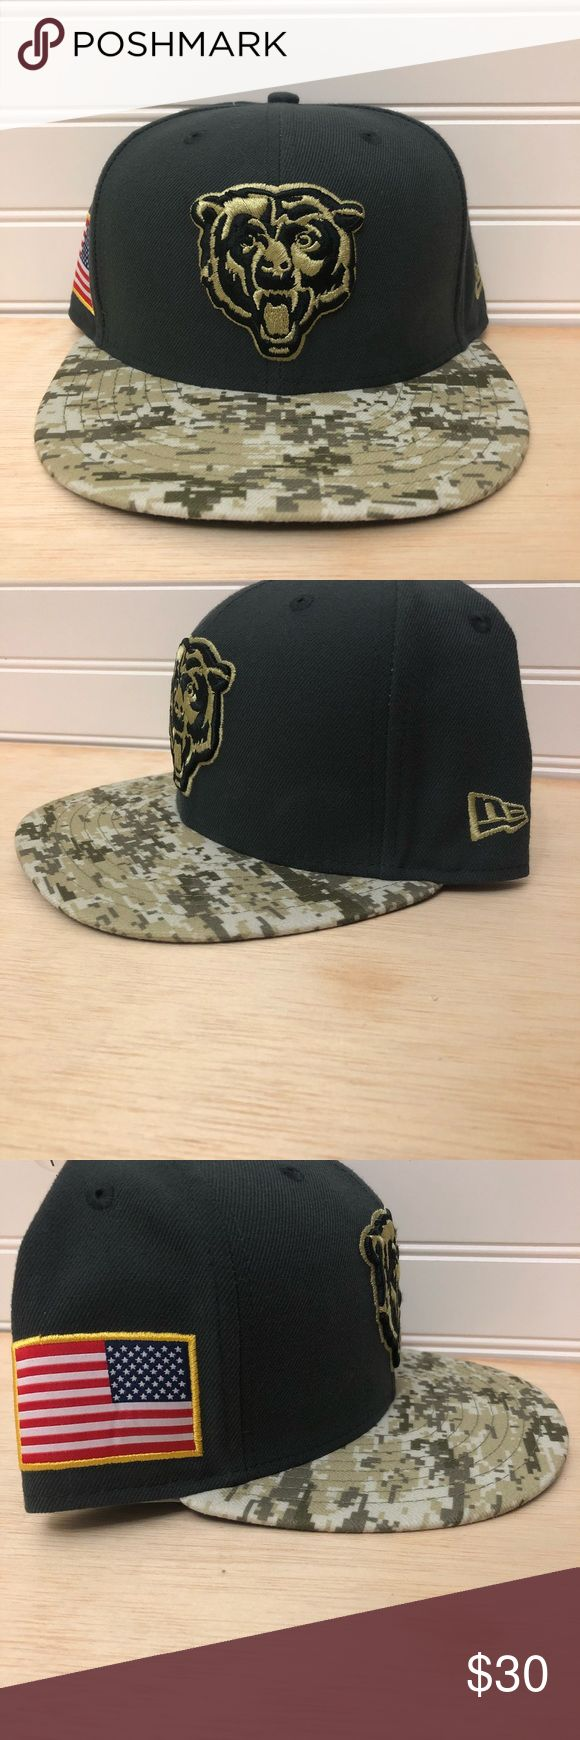 New Era Chicago Bears Fitted Cap Salute to Service New Era Chicago Bears Authentic and ORIGINAL 59FIFTY fitted poly hat by New Era. '2016 SALUTE-TO-SERVICE' has charcoal grey crown with DIGITAL desert storm camouflage camo visor in green, brown and tan, black undervisor, raised embroidered team logo on front in matching light green and black, New Era logo on side, embroidered USA Flag applique on opposite side, embroidered NFL shield logo on back with digital camo military ribbon New Era…